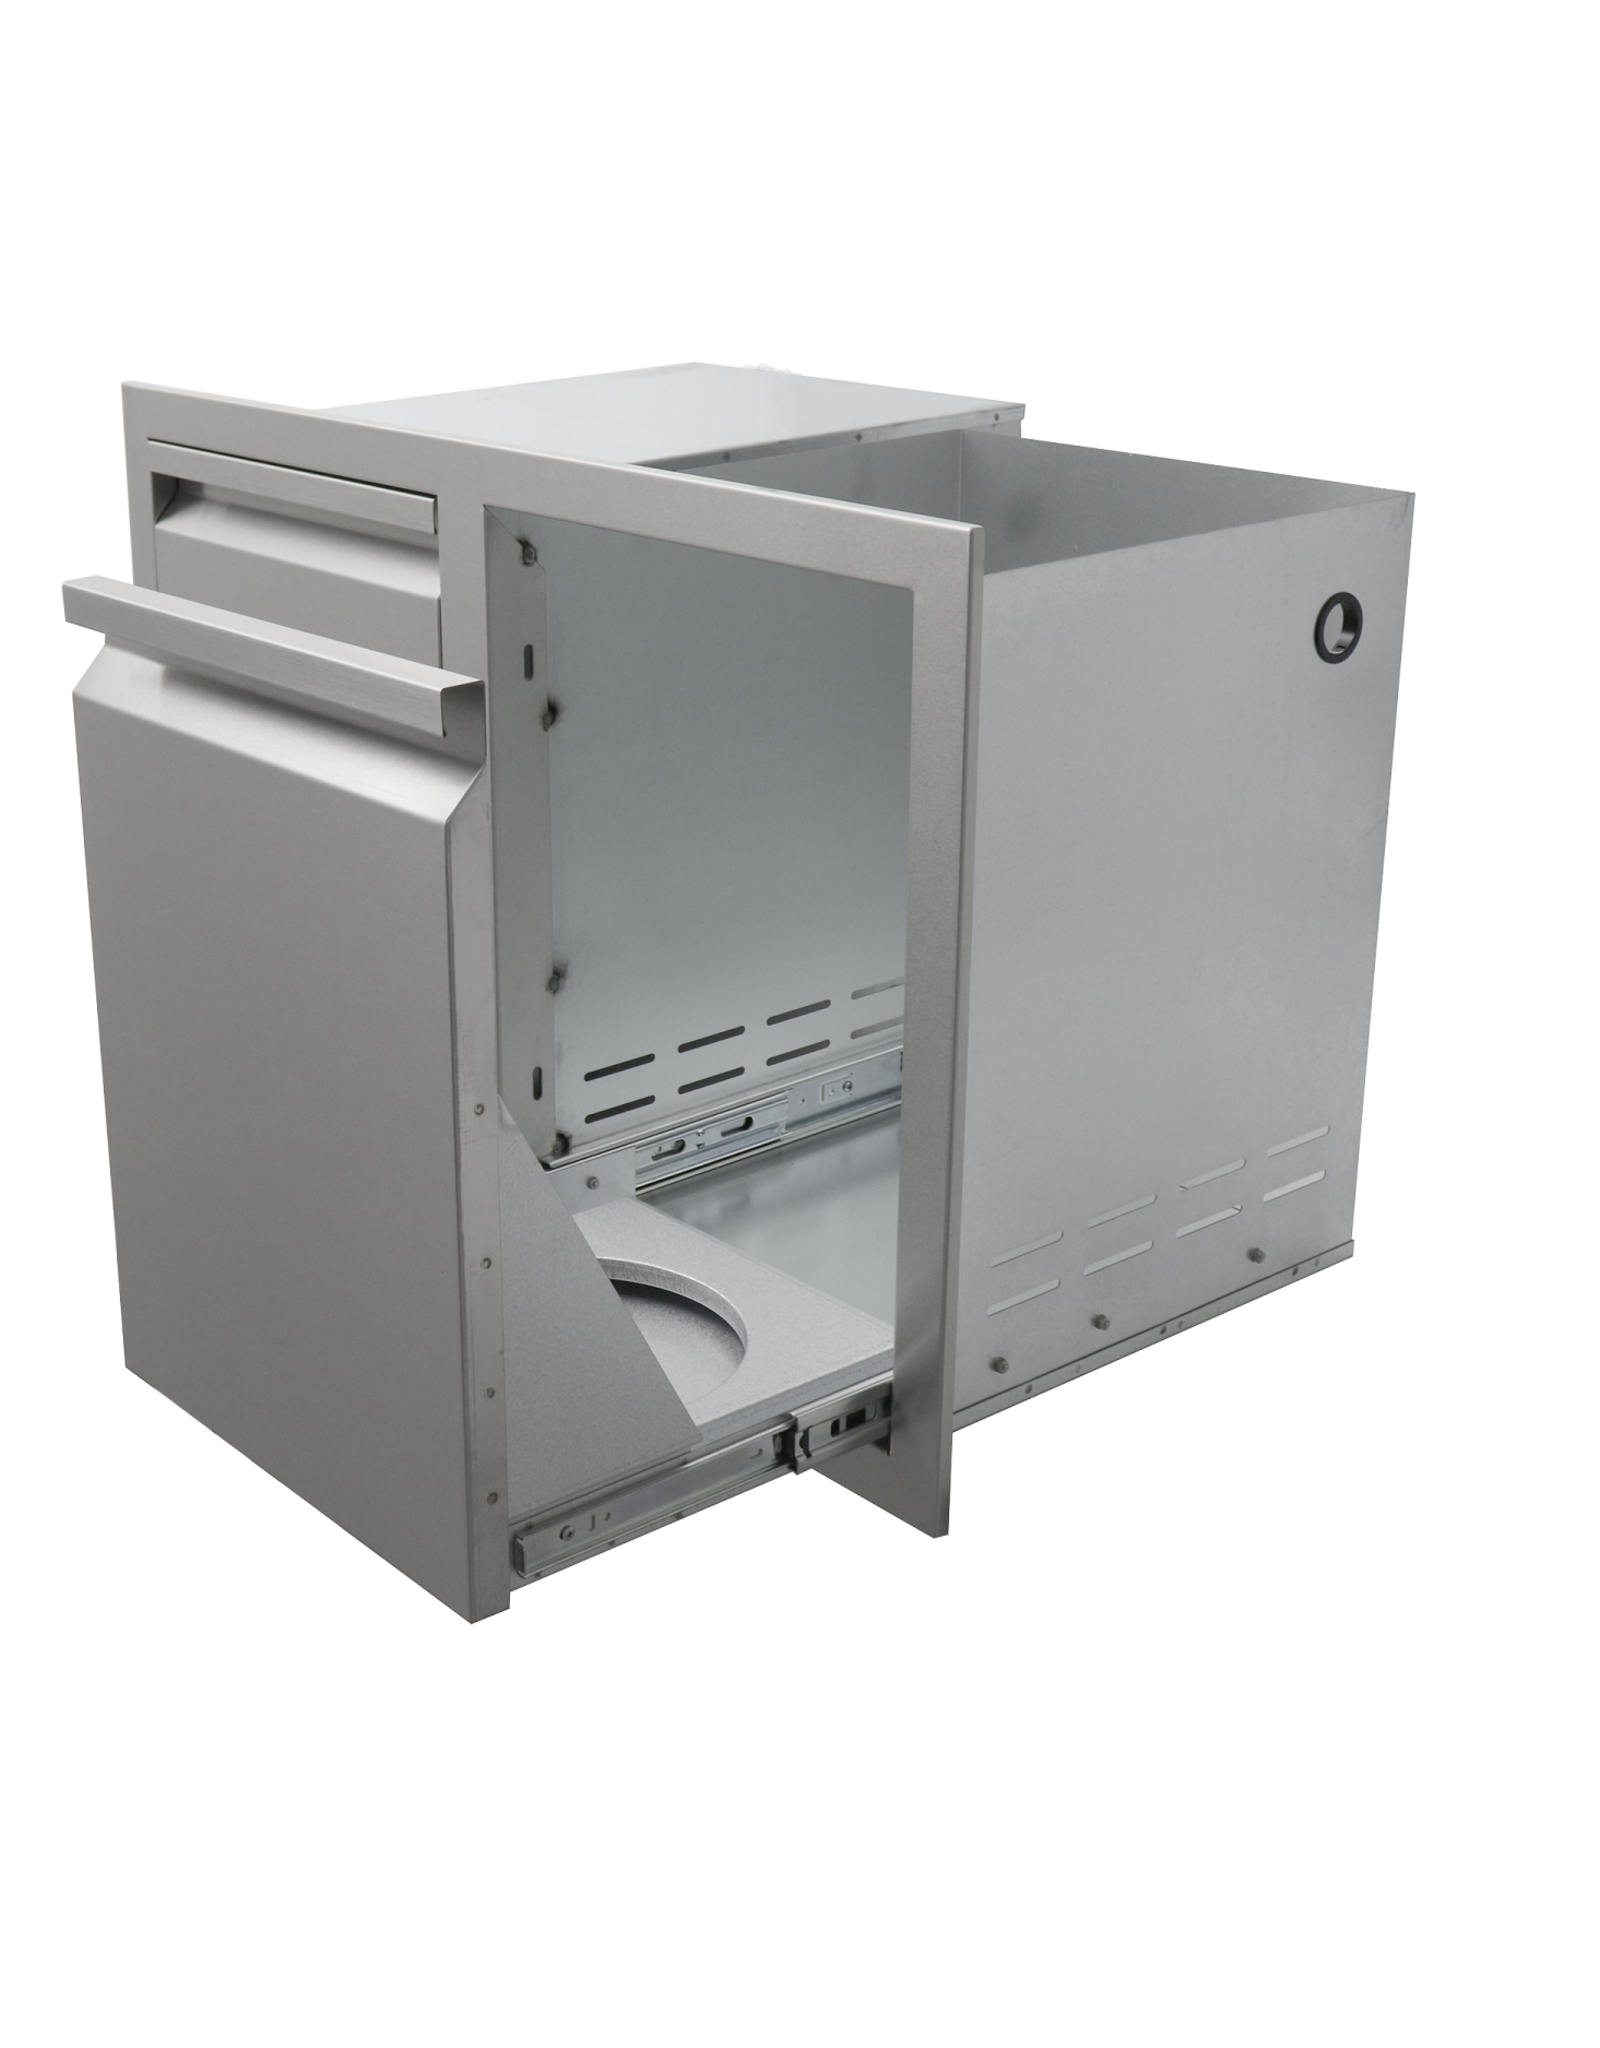 Renaissance Cooking Systems Renaissance Cooking Systems The Valiant Series Dual Drawer/Propane Drawer Combo - VDCL1